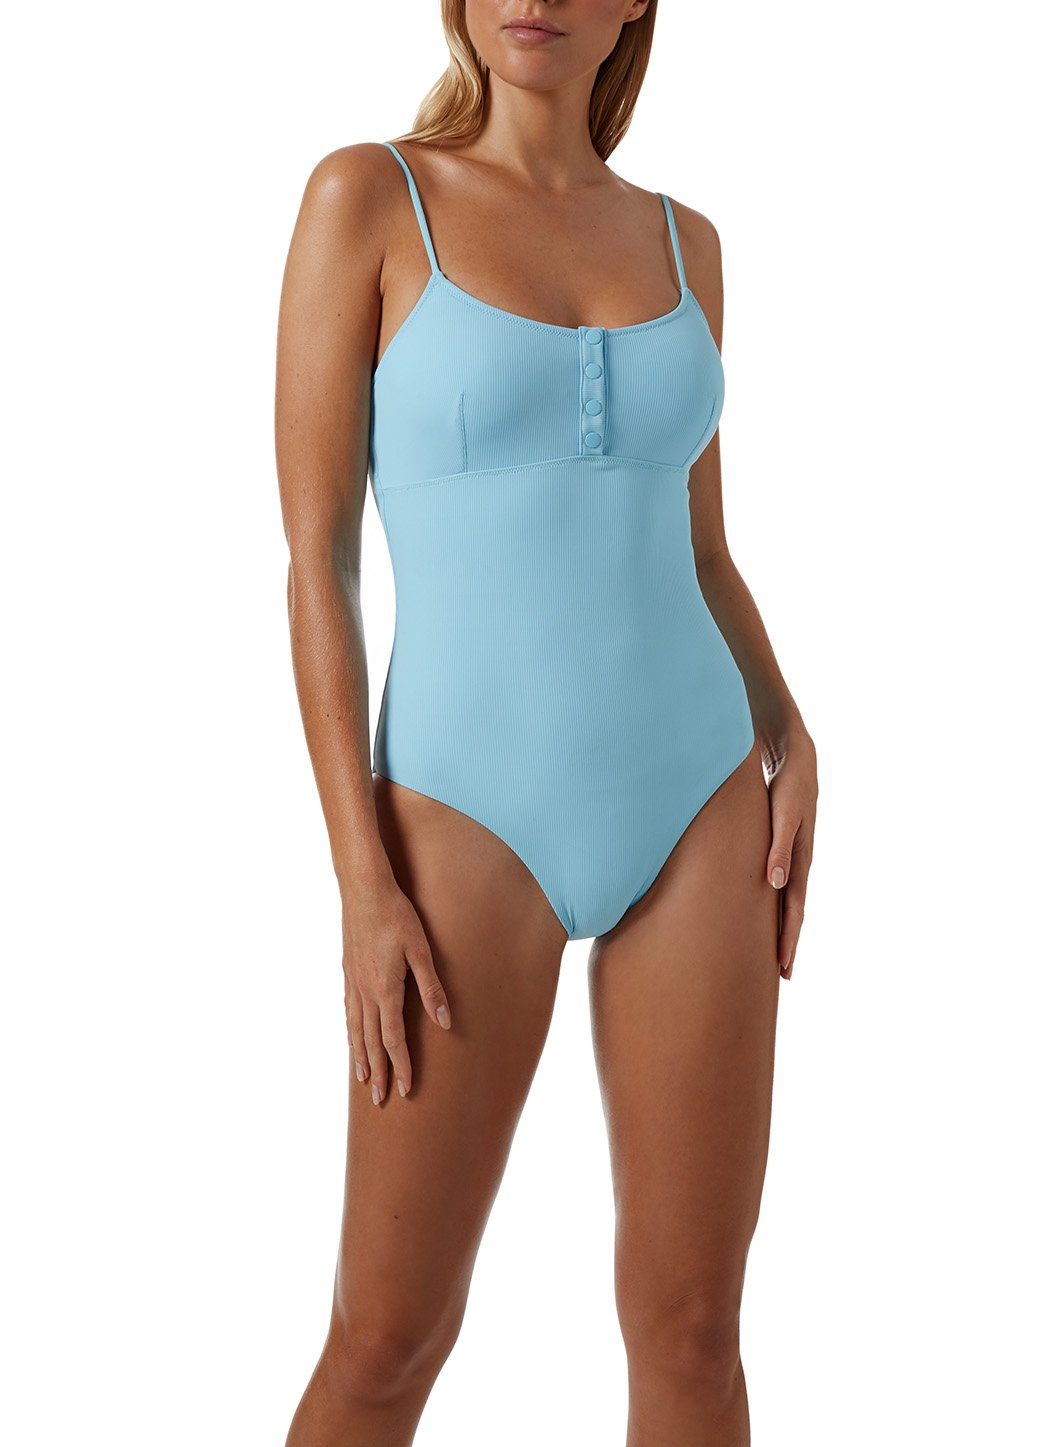 Calabasas Ribbed Celeste Swimsuit